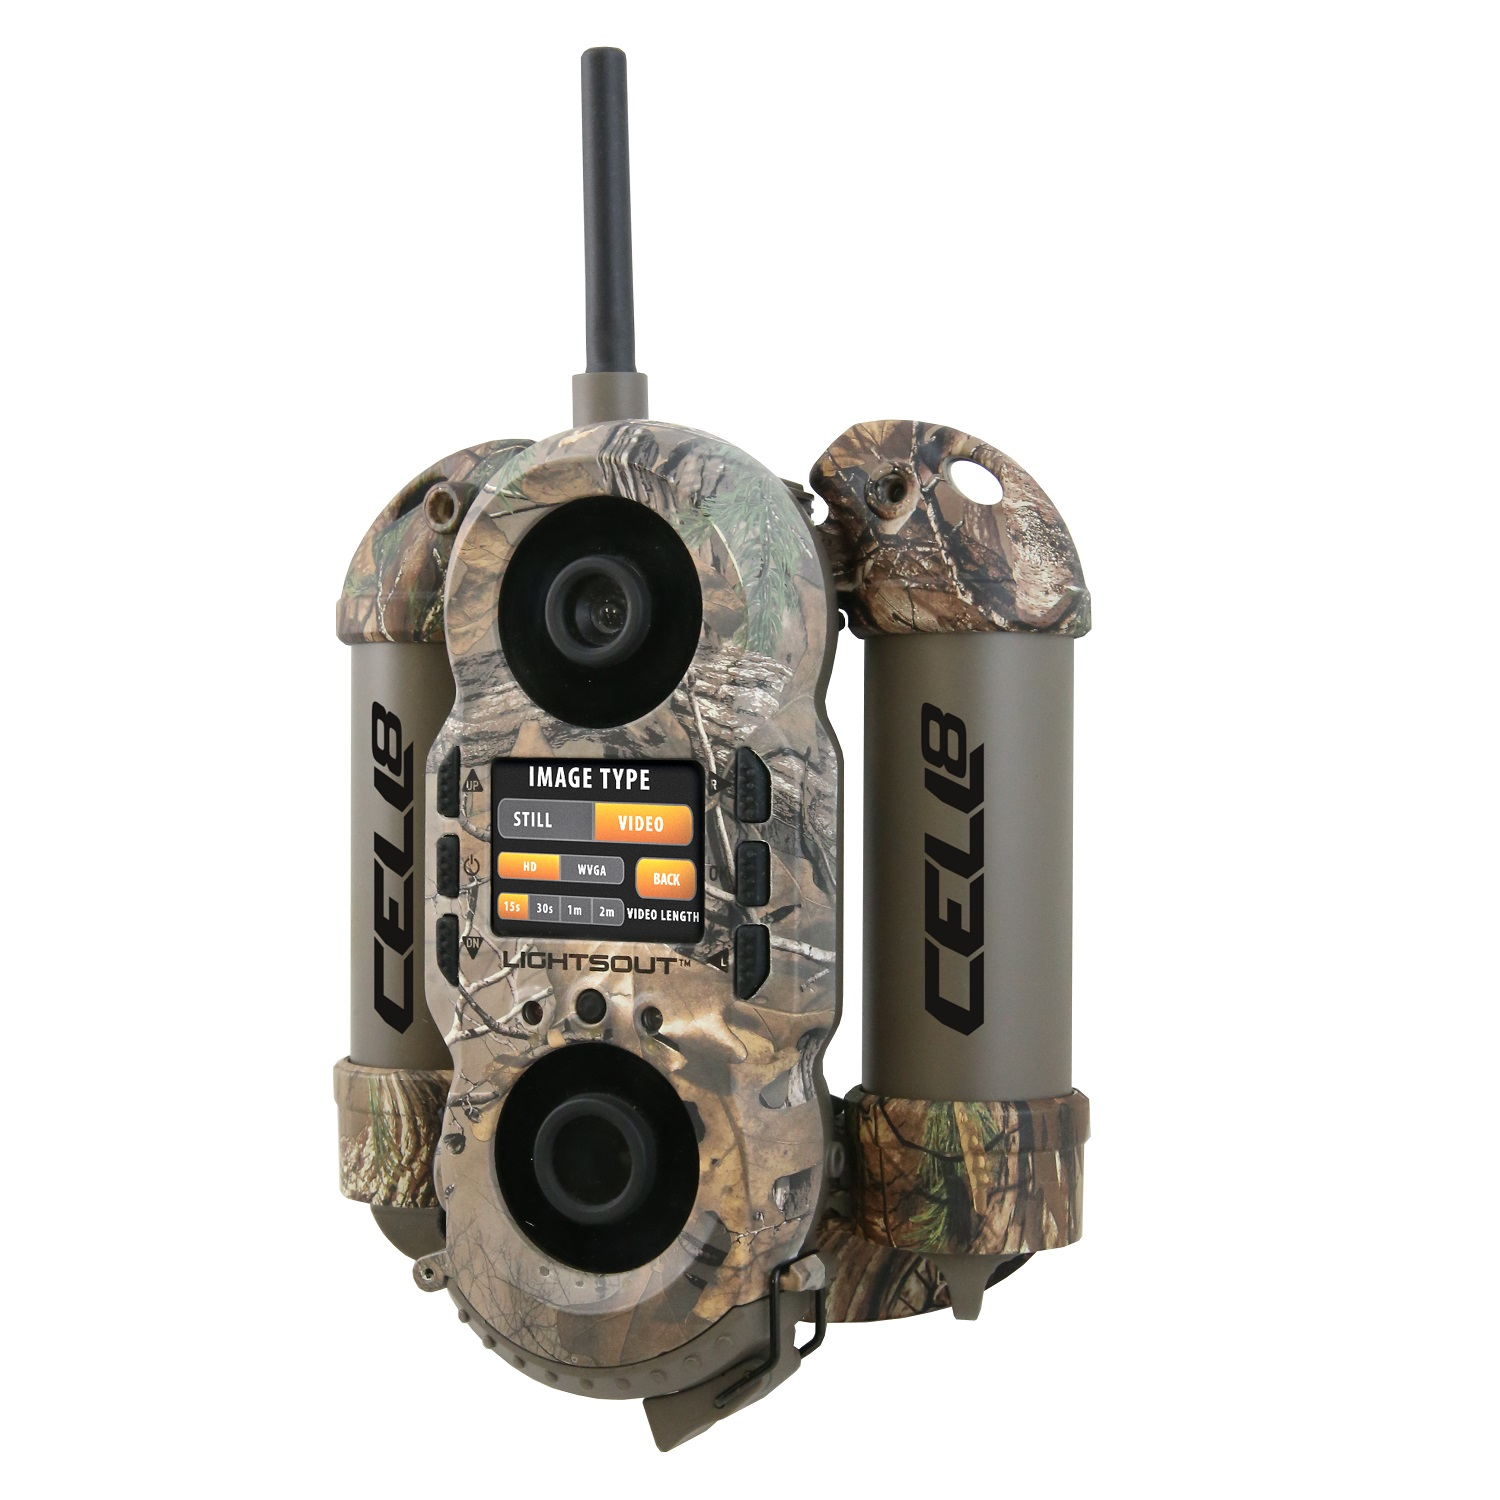 Wildgame Innovations Crush 8 Cell Trail Camera-Realtree Xtra